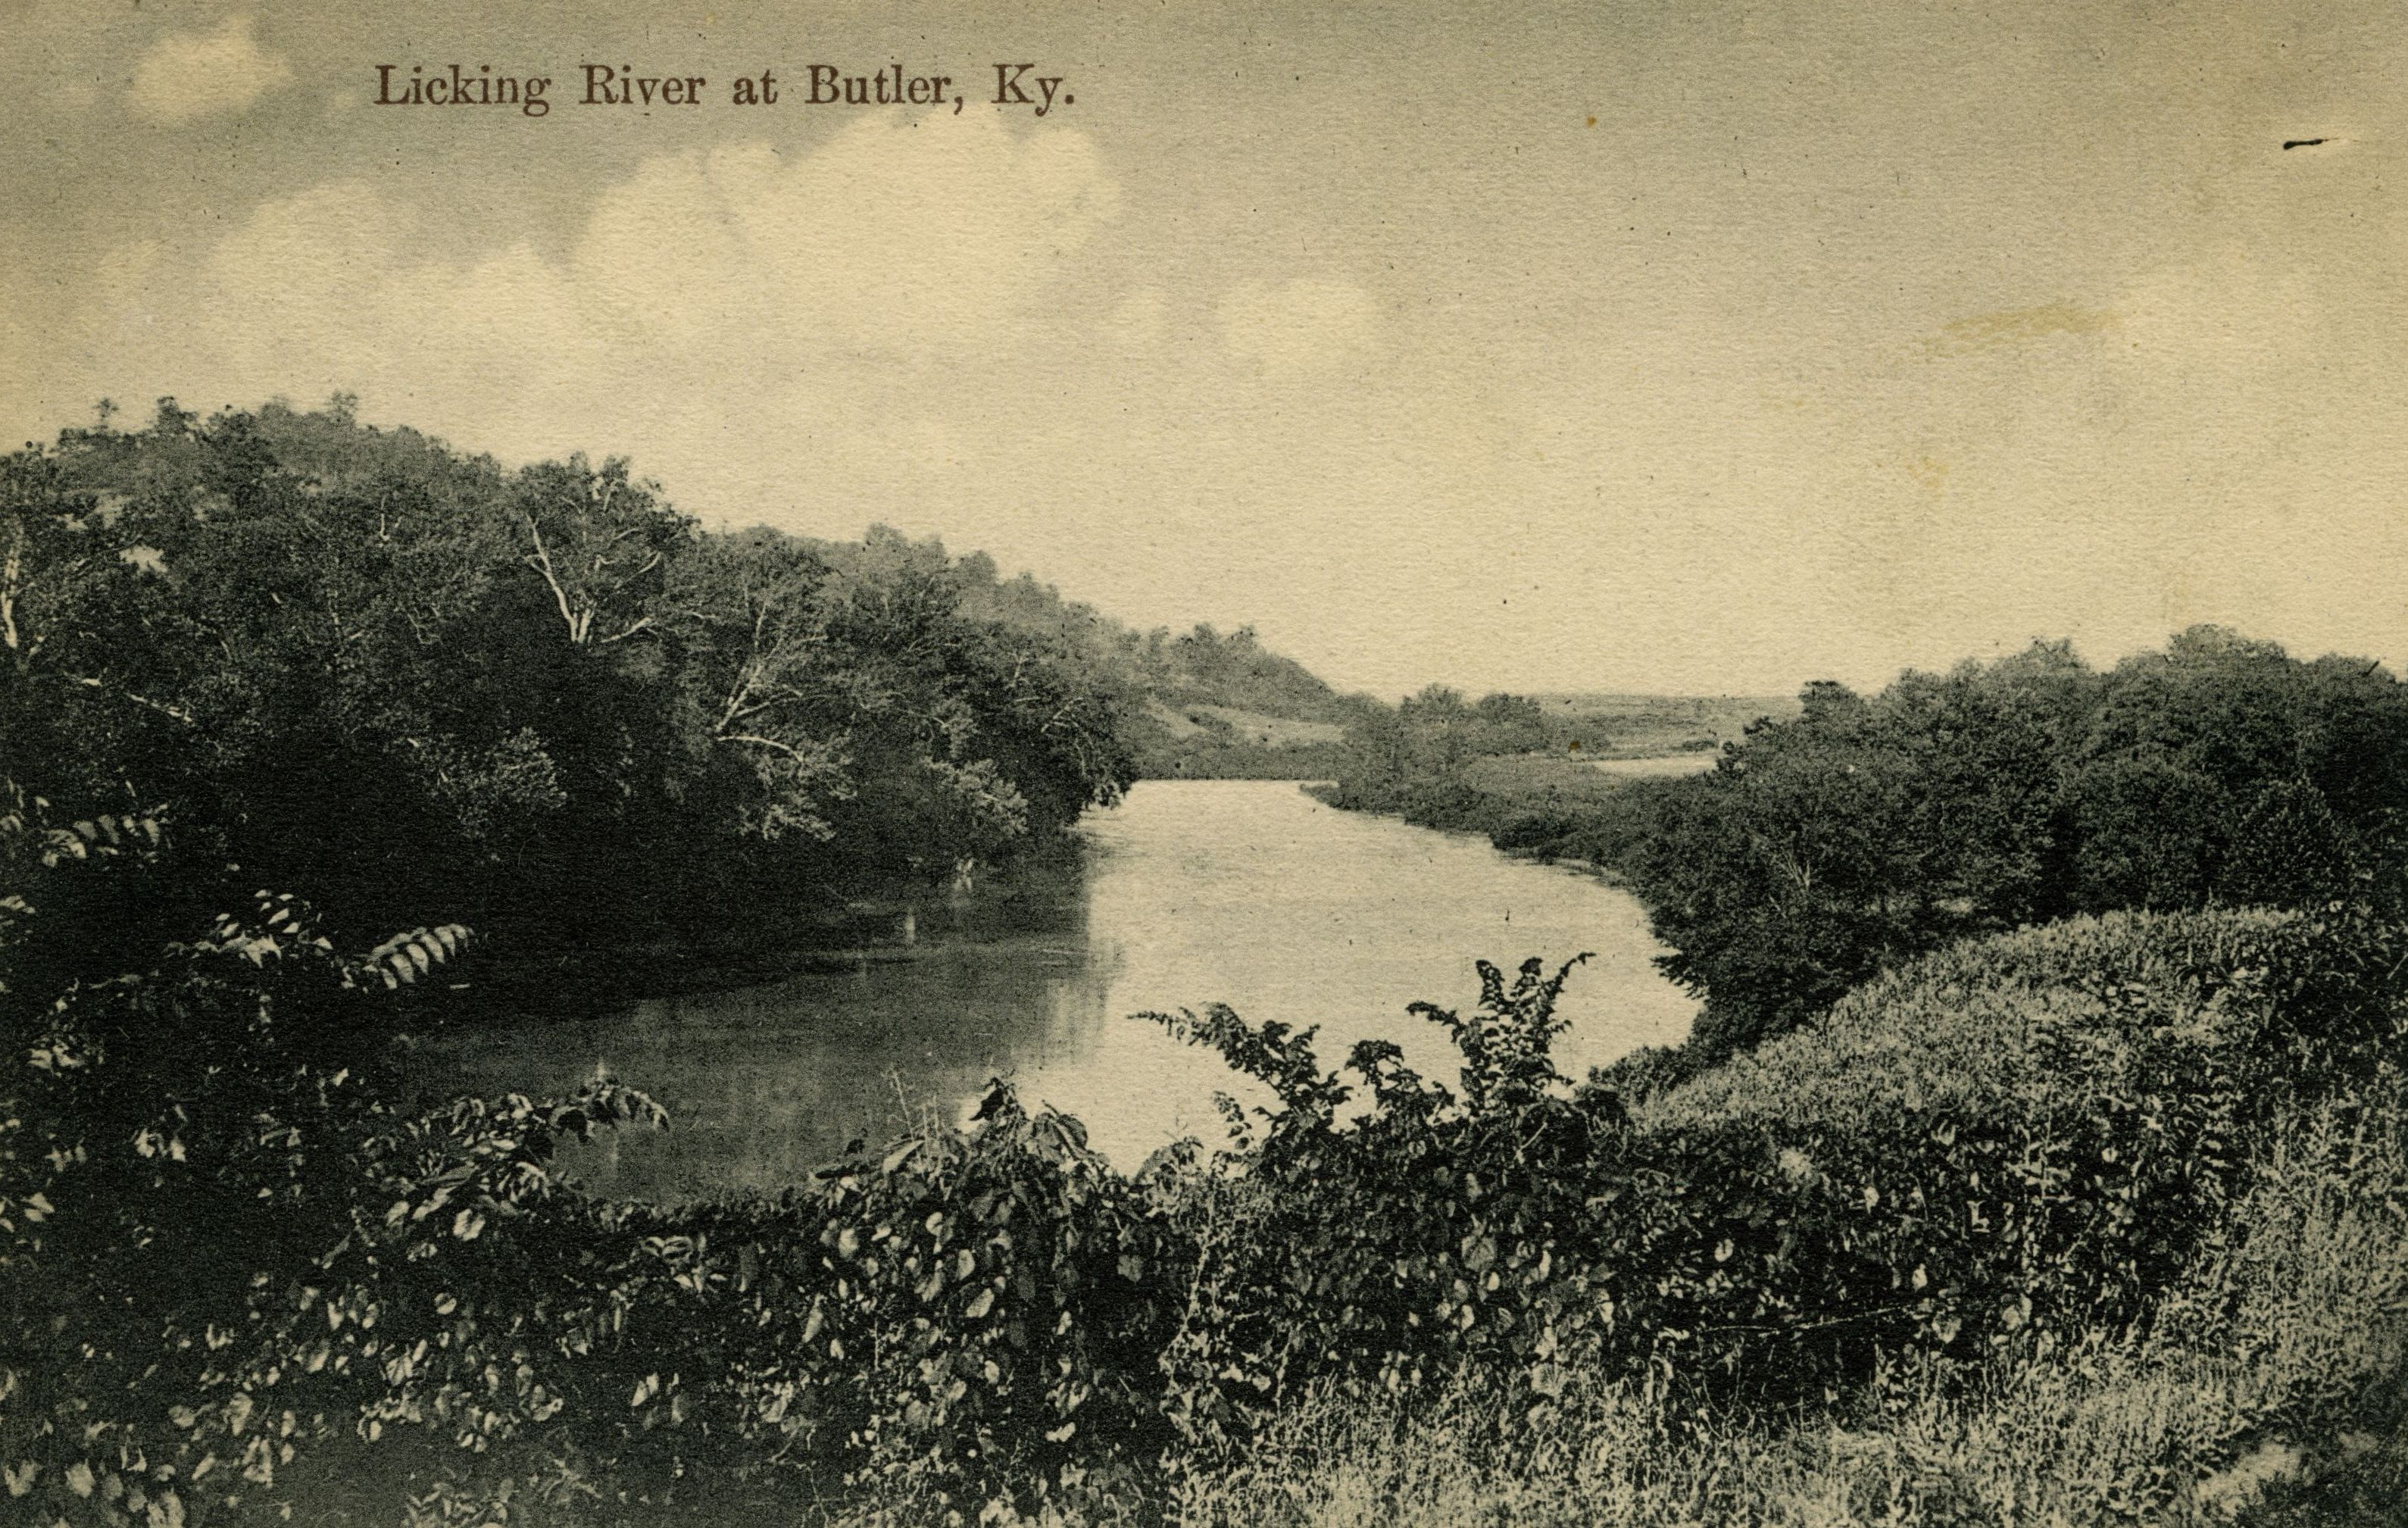 20th Century view of the Licking River near Butler in Pendleton County - part of the Ronald Morgan Postcard Collection - Graphic 5 - click to enlarge.